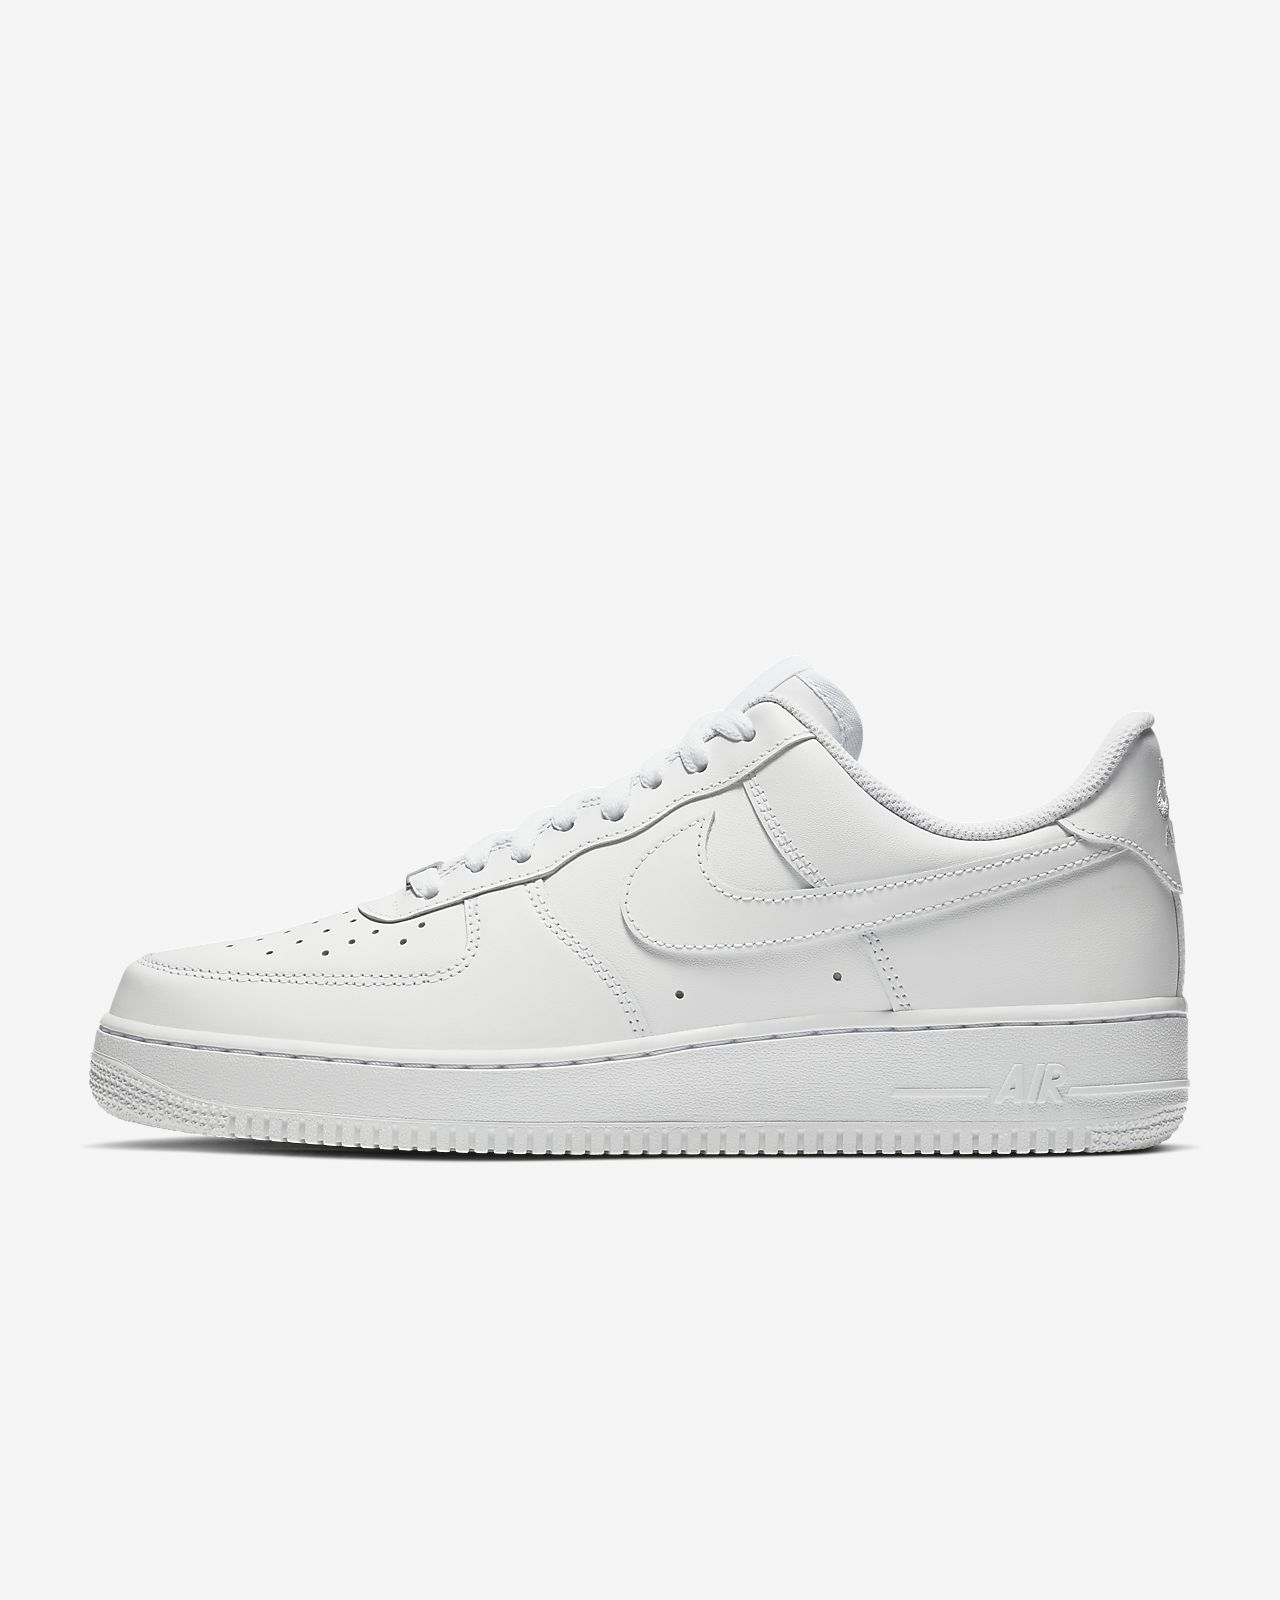 official photos 85a98 89801 Low Resolution Nike Air Force 1 07 Shoe Nike Air Force 1 07 Shoe